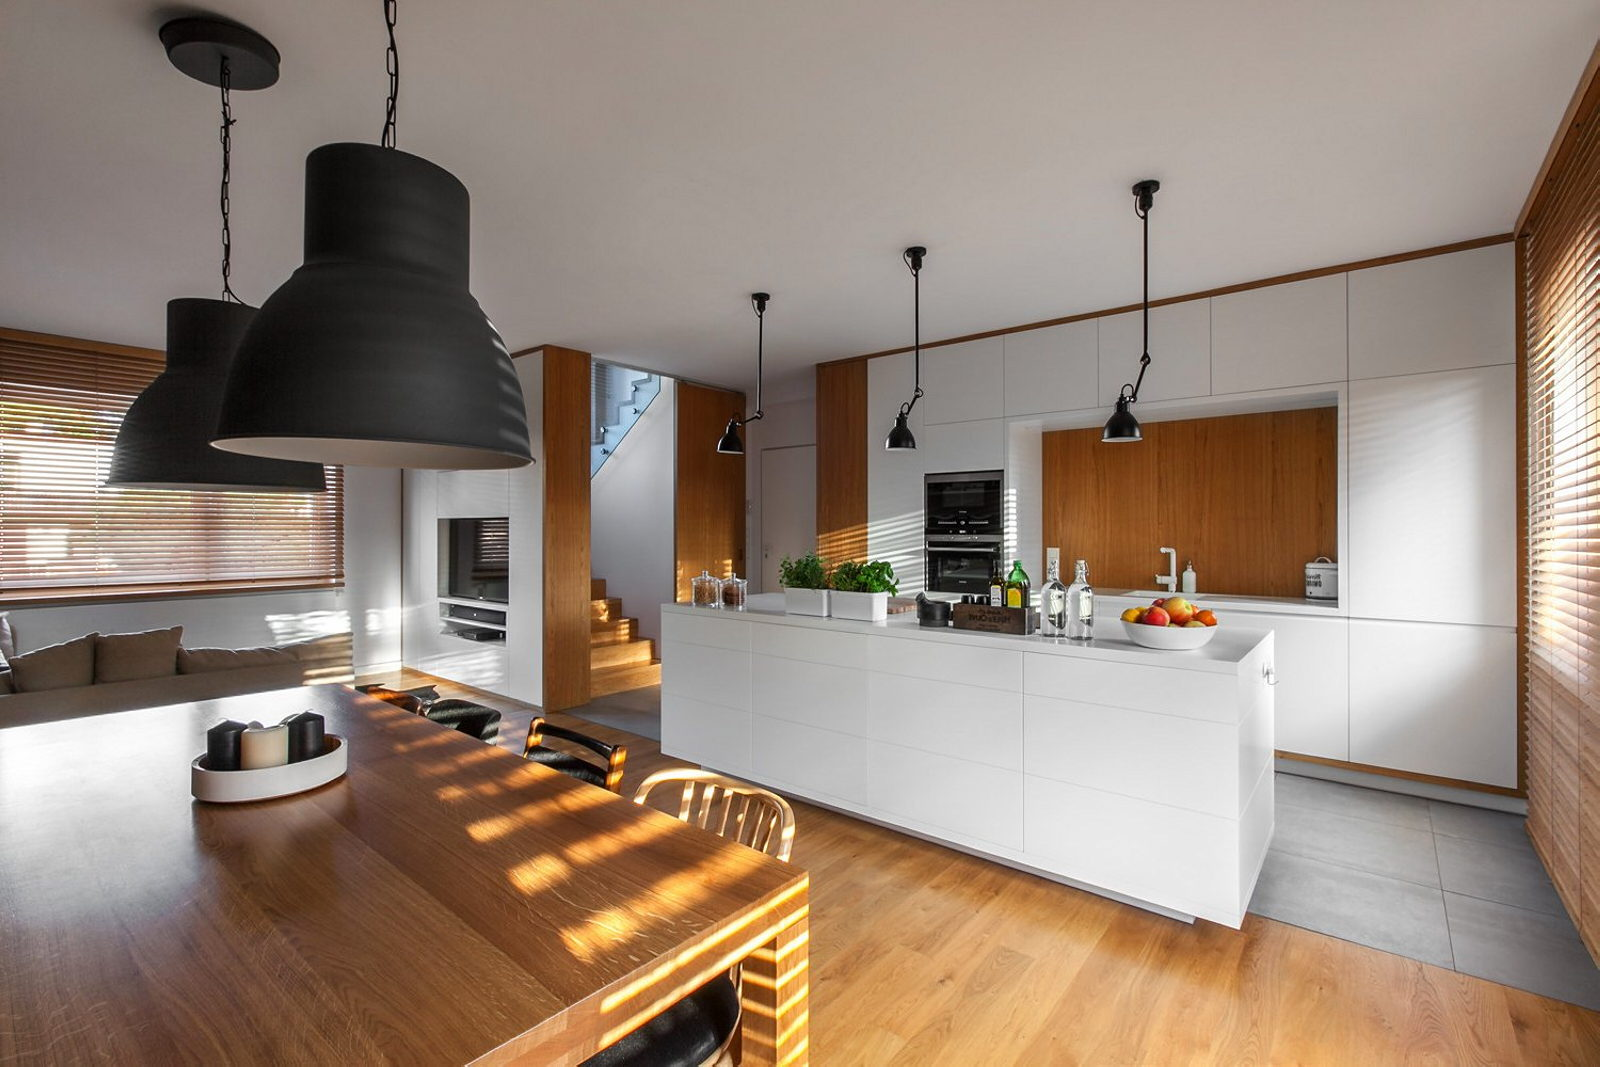 A Cosy House In Poland From Mode Lina Architekci